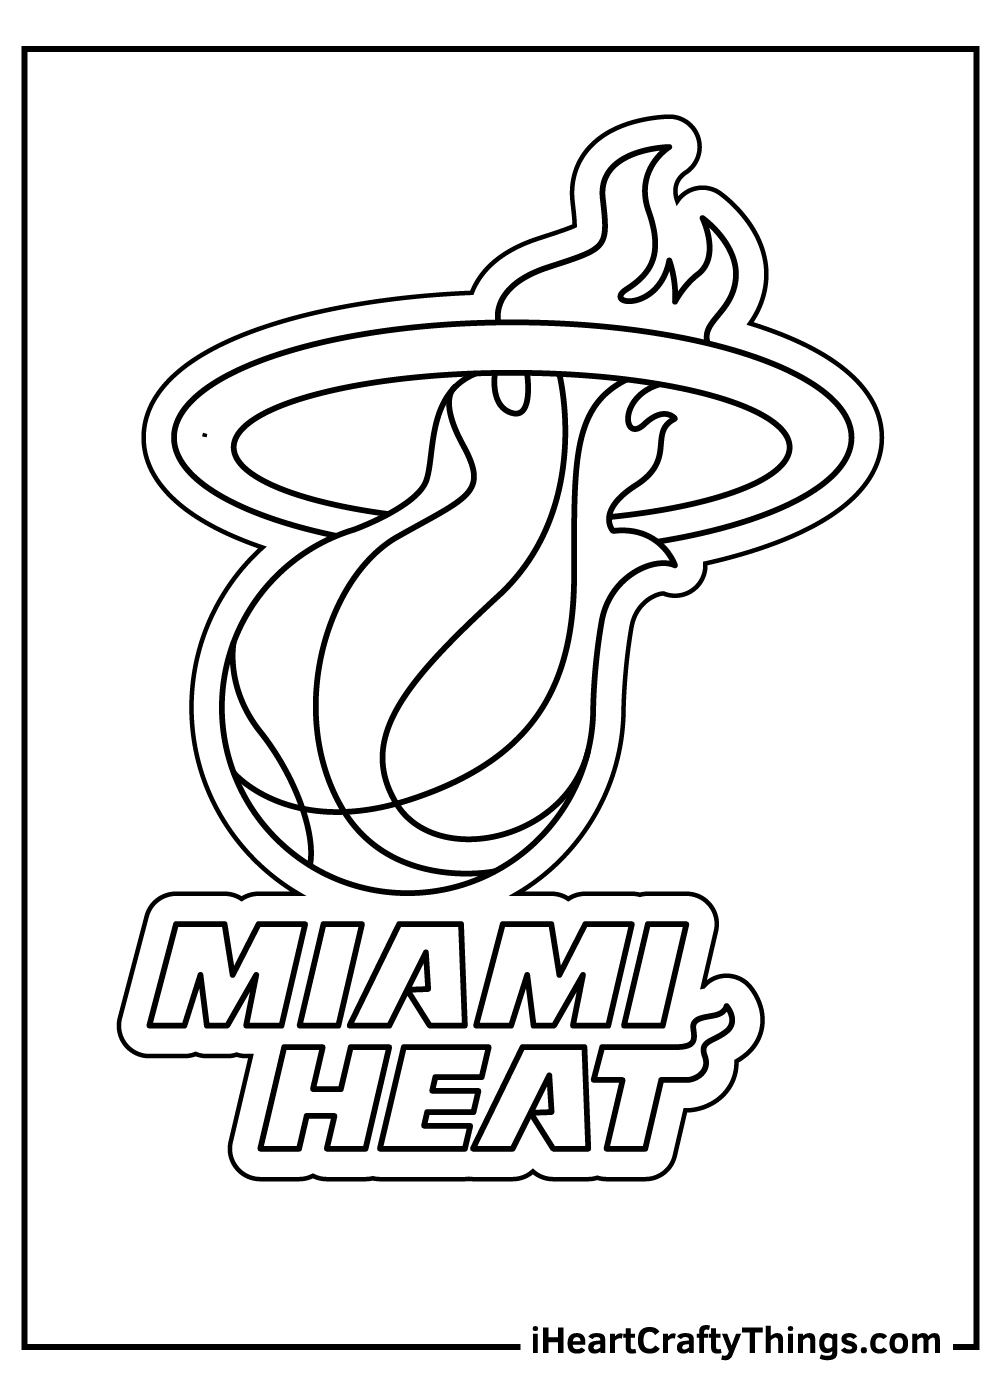 miami heat NBA coloring pages free download